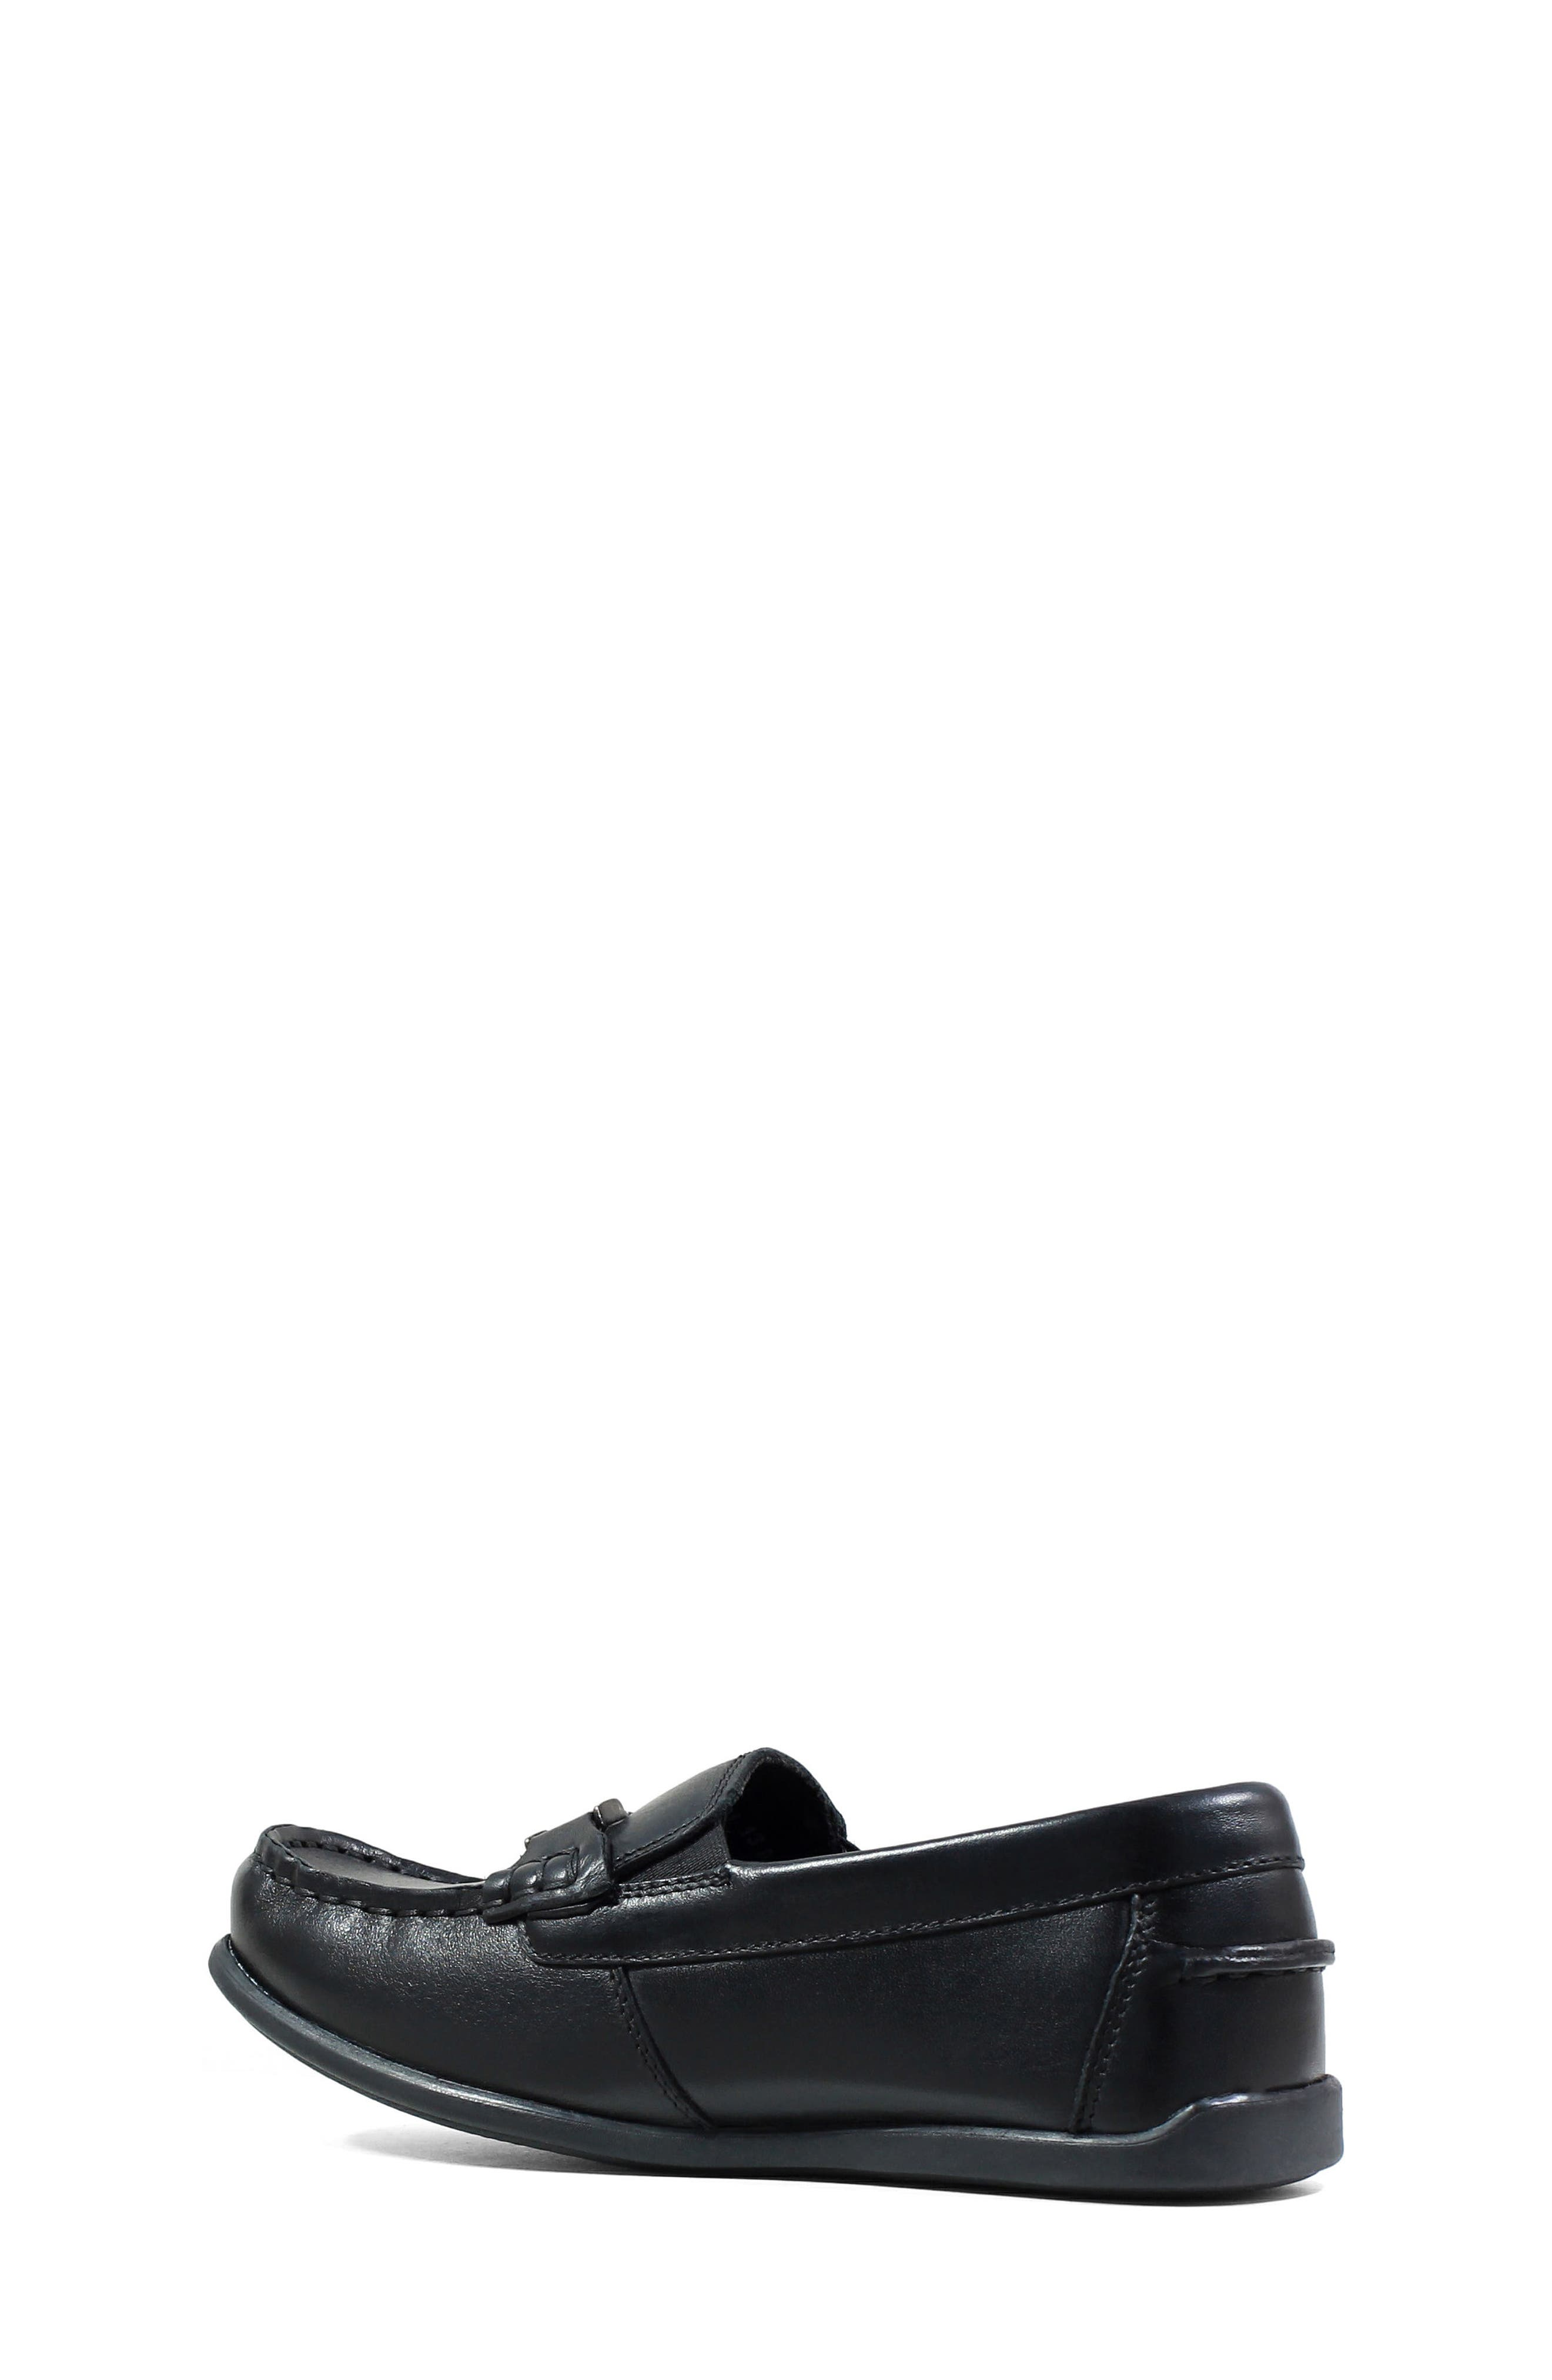 Alternate Image 2  - Florsheim Jasper Bit Jr Loafer (Toddler, Little Kid & Big Kid)